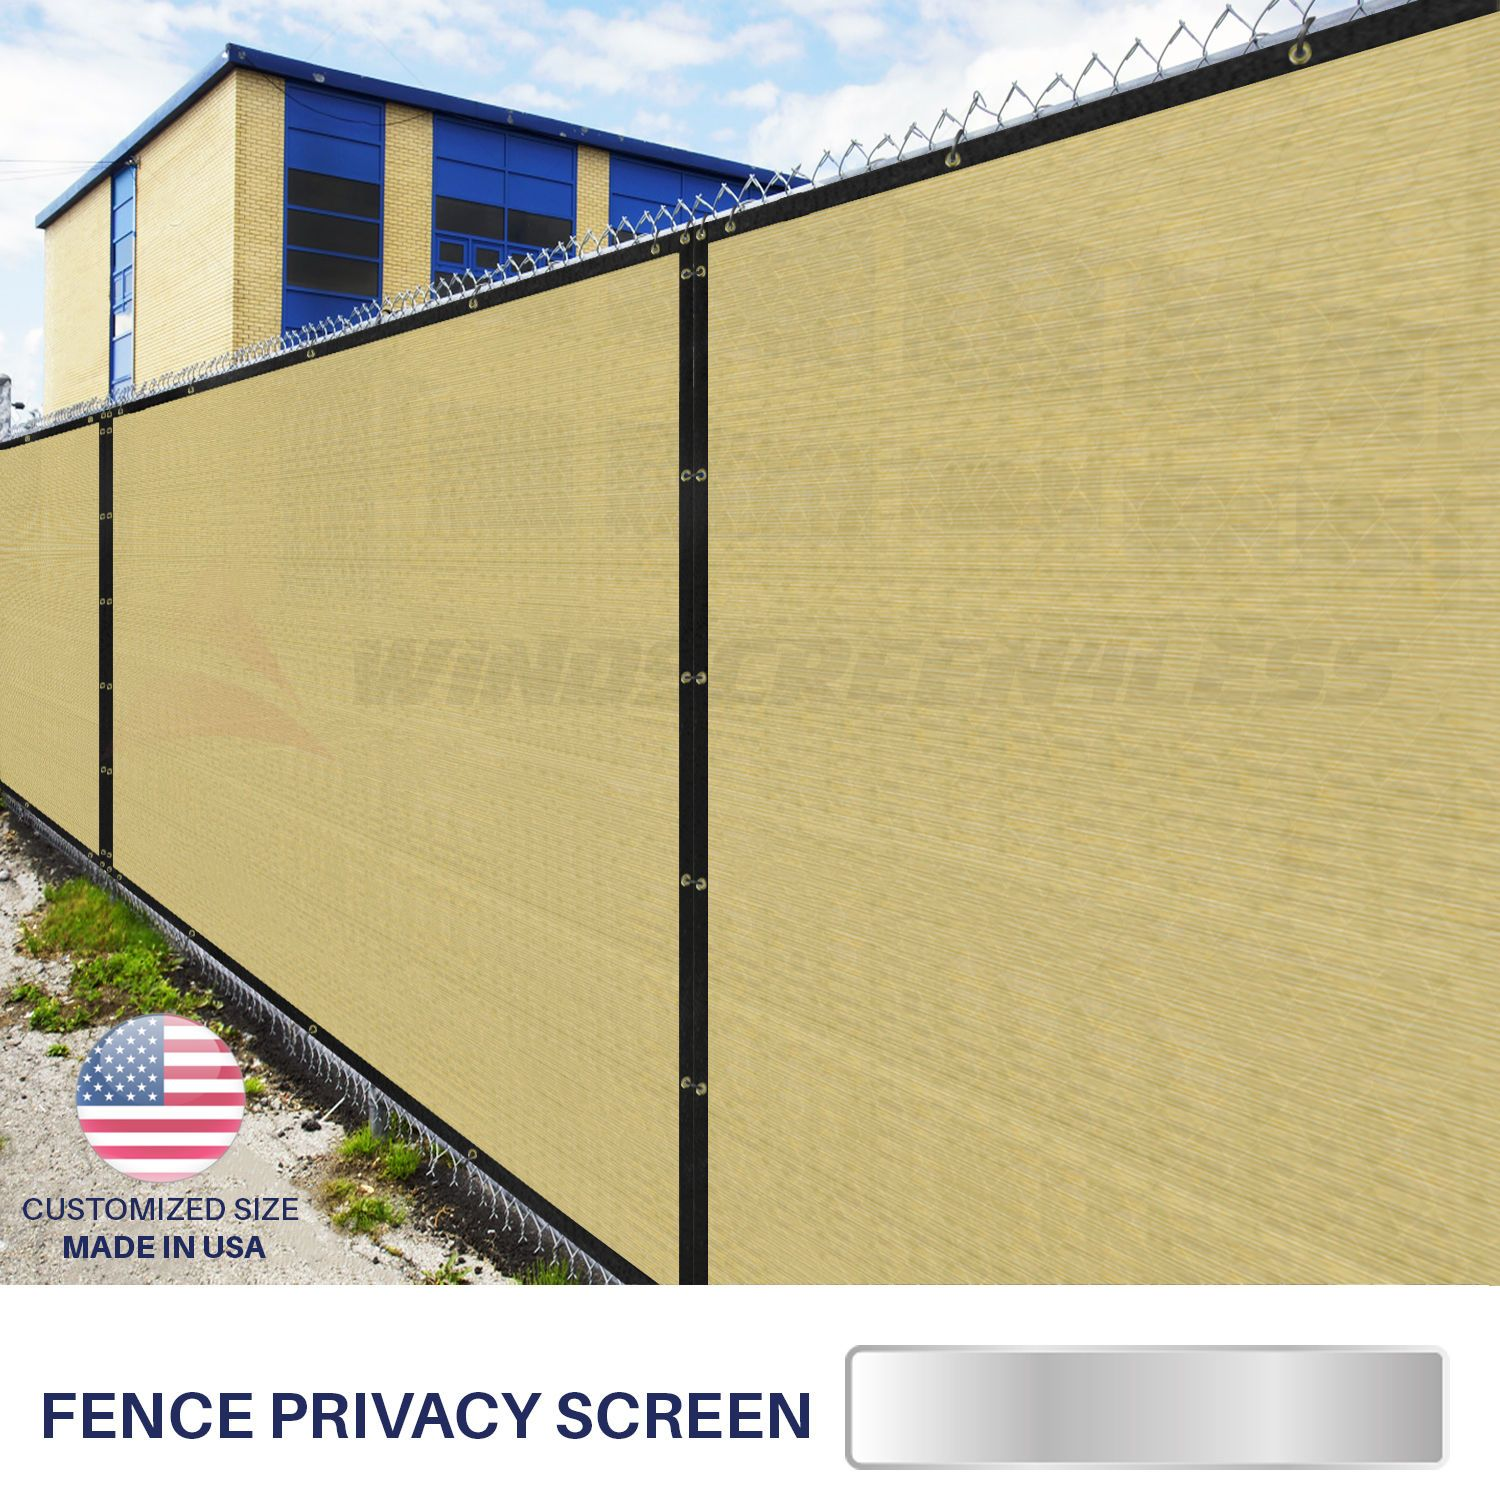 8 X 10 Privacy Fence Screen In Beige Tan With Brass Grommet 85 Blockage  Windscreen Outdoor Mesh Fencing Cover Netting Fabric Custom Size Available  Find Out ...